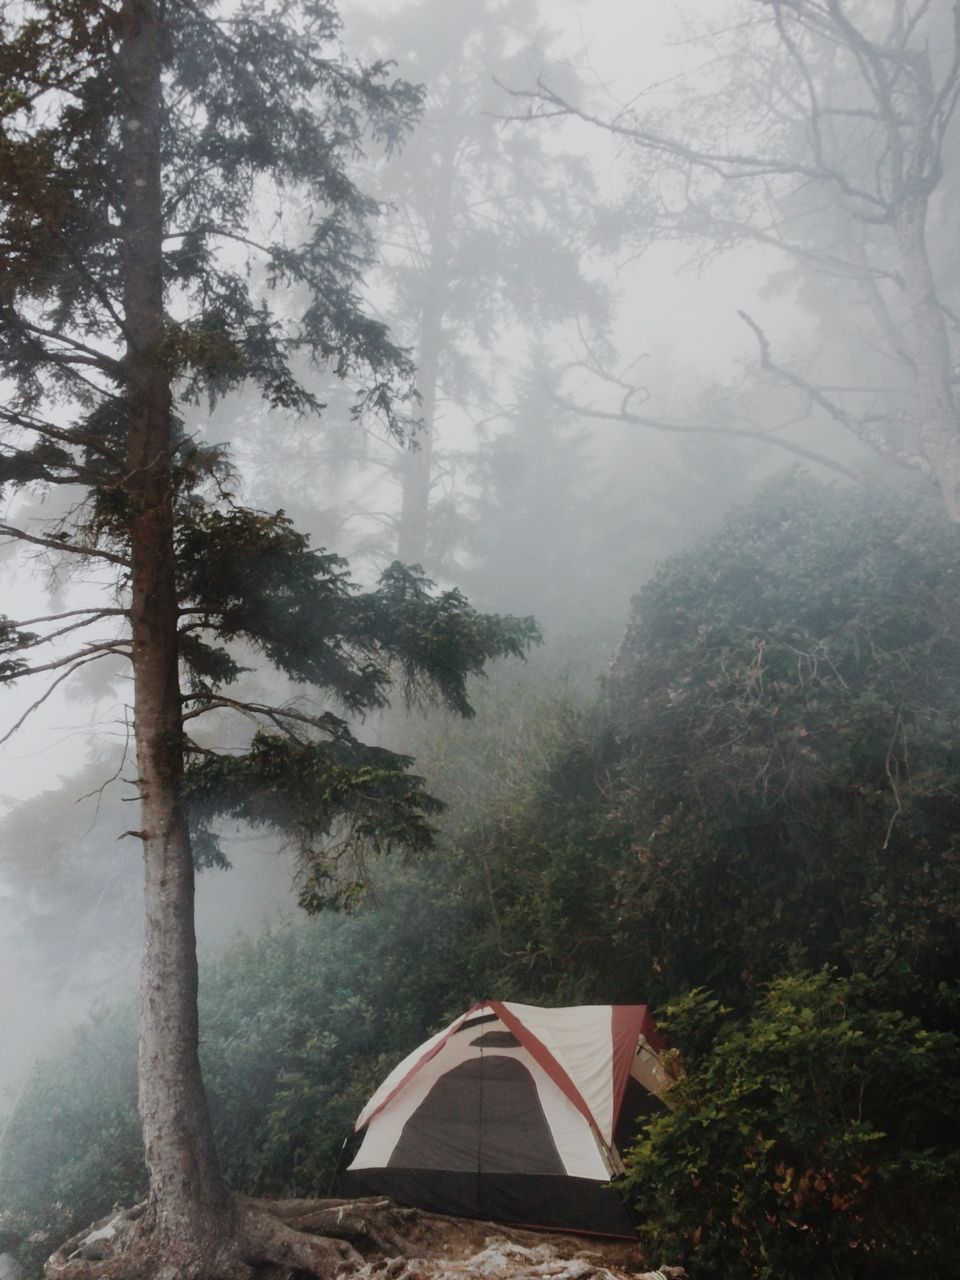 Tent Foggy Forest Camping Outdoors Adventure Mountaincampingplaces Outdoors Adventure Camping Inspiration Outdoor Hd wallpaper tent camping forest fog